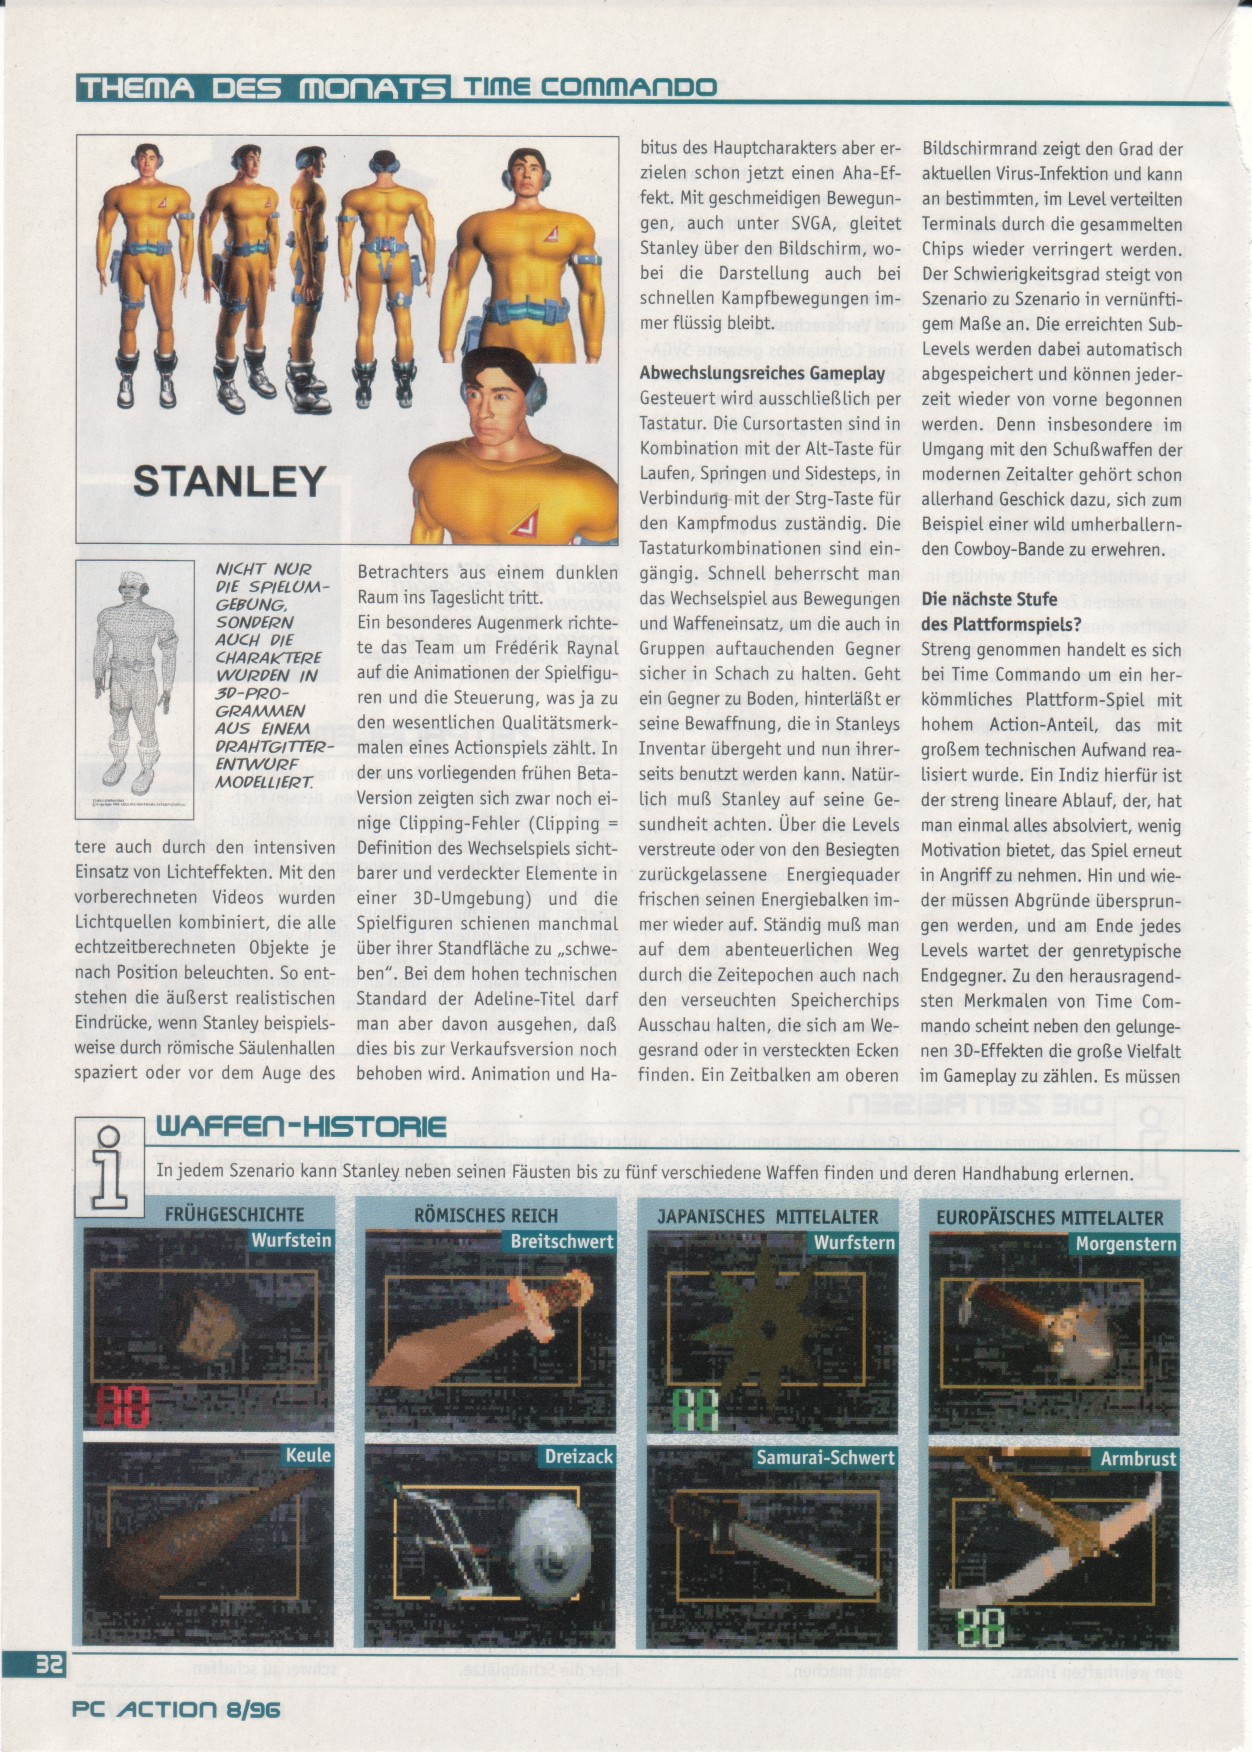 PC Action 1996-08 [3]